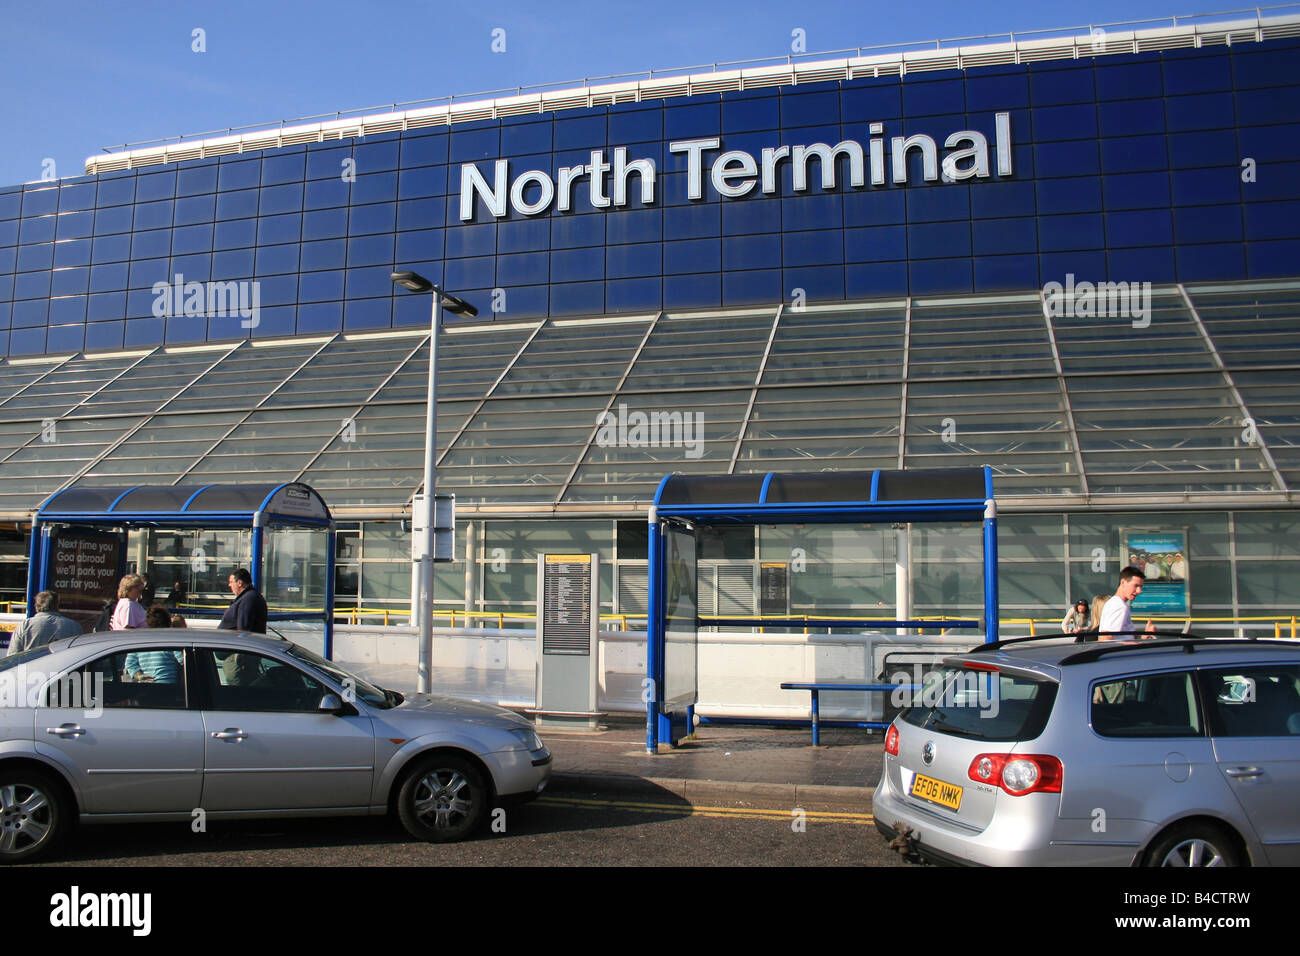 GATWICK AIRPORT NORTH TERMINAL - Stock Image